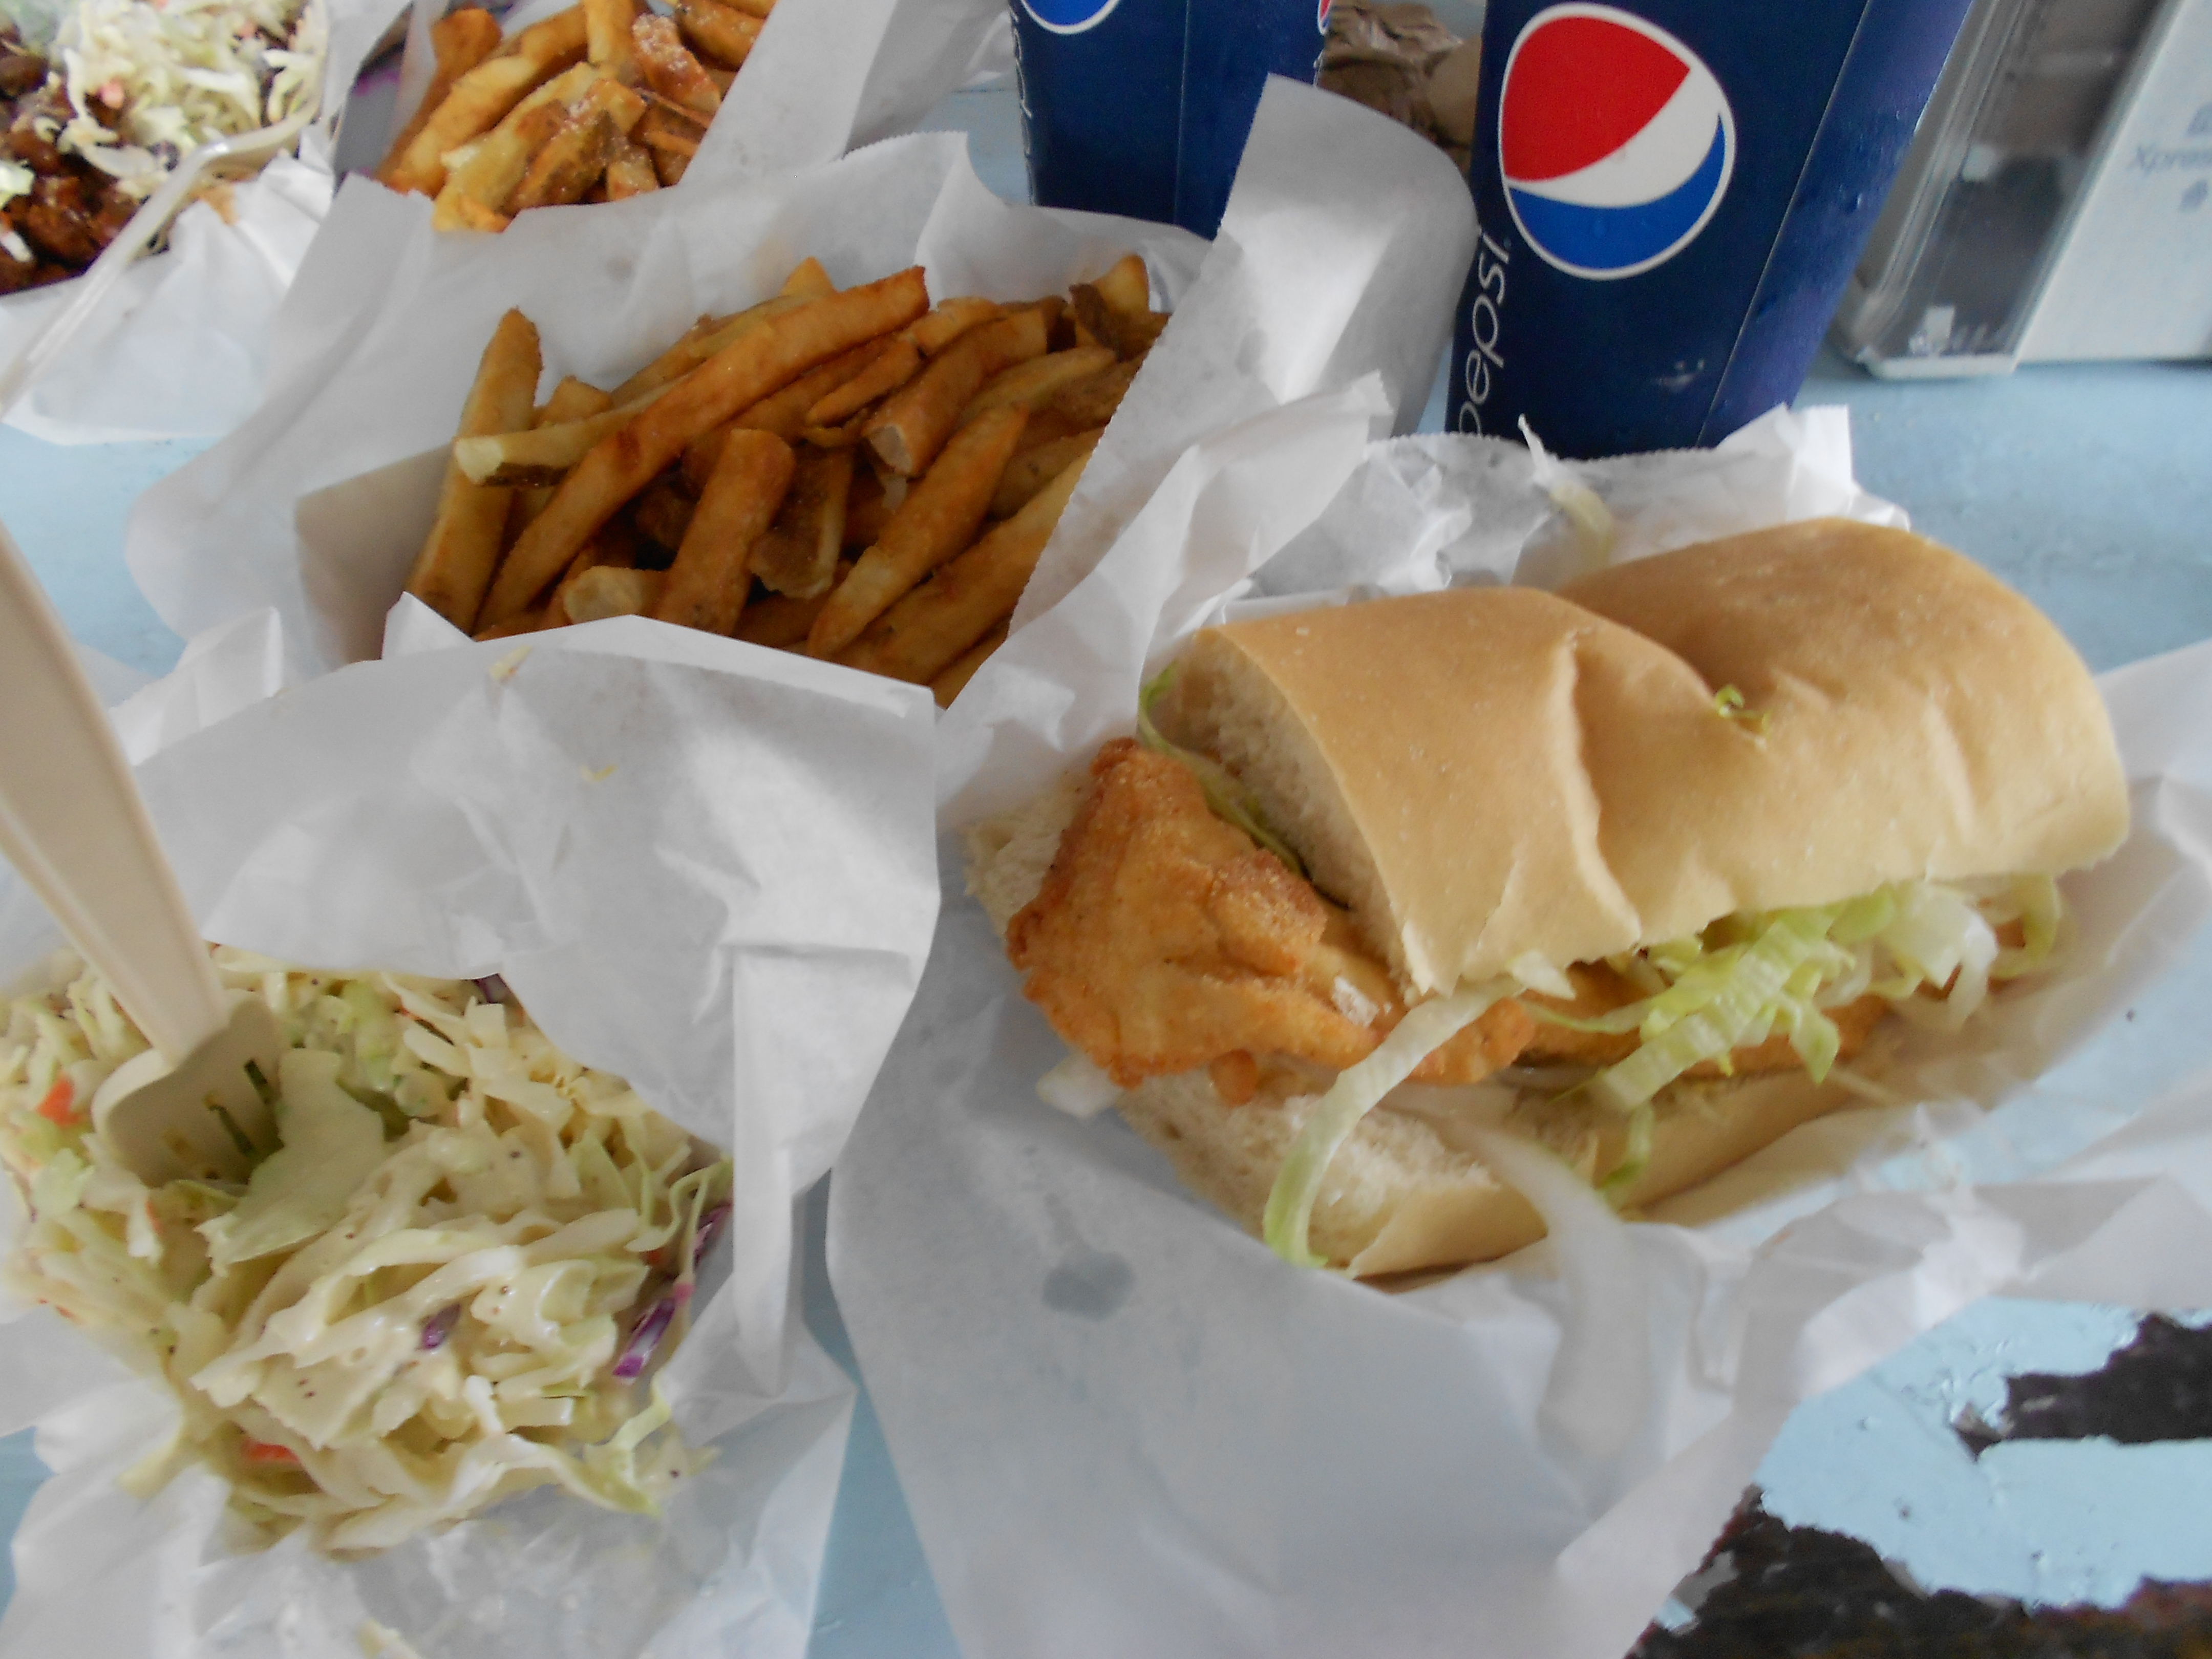 B.O.'s Fish Wagon Fried Grouper Sandwich